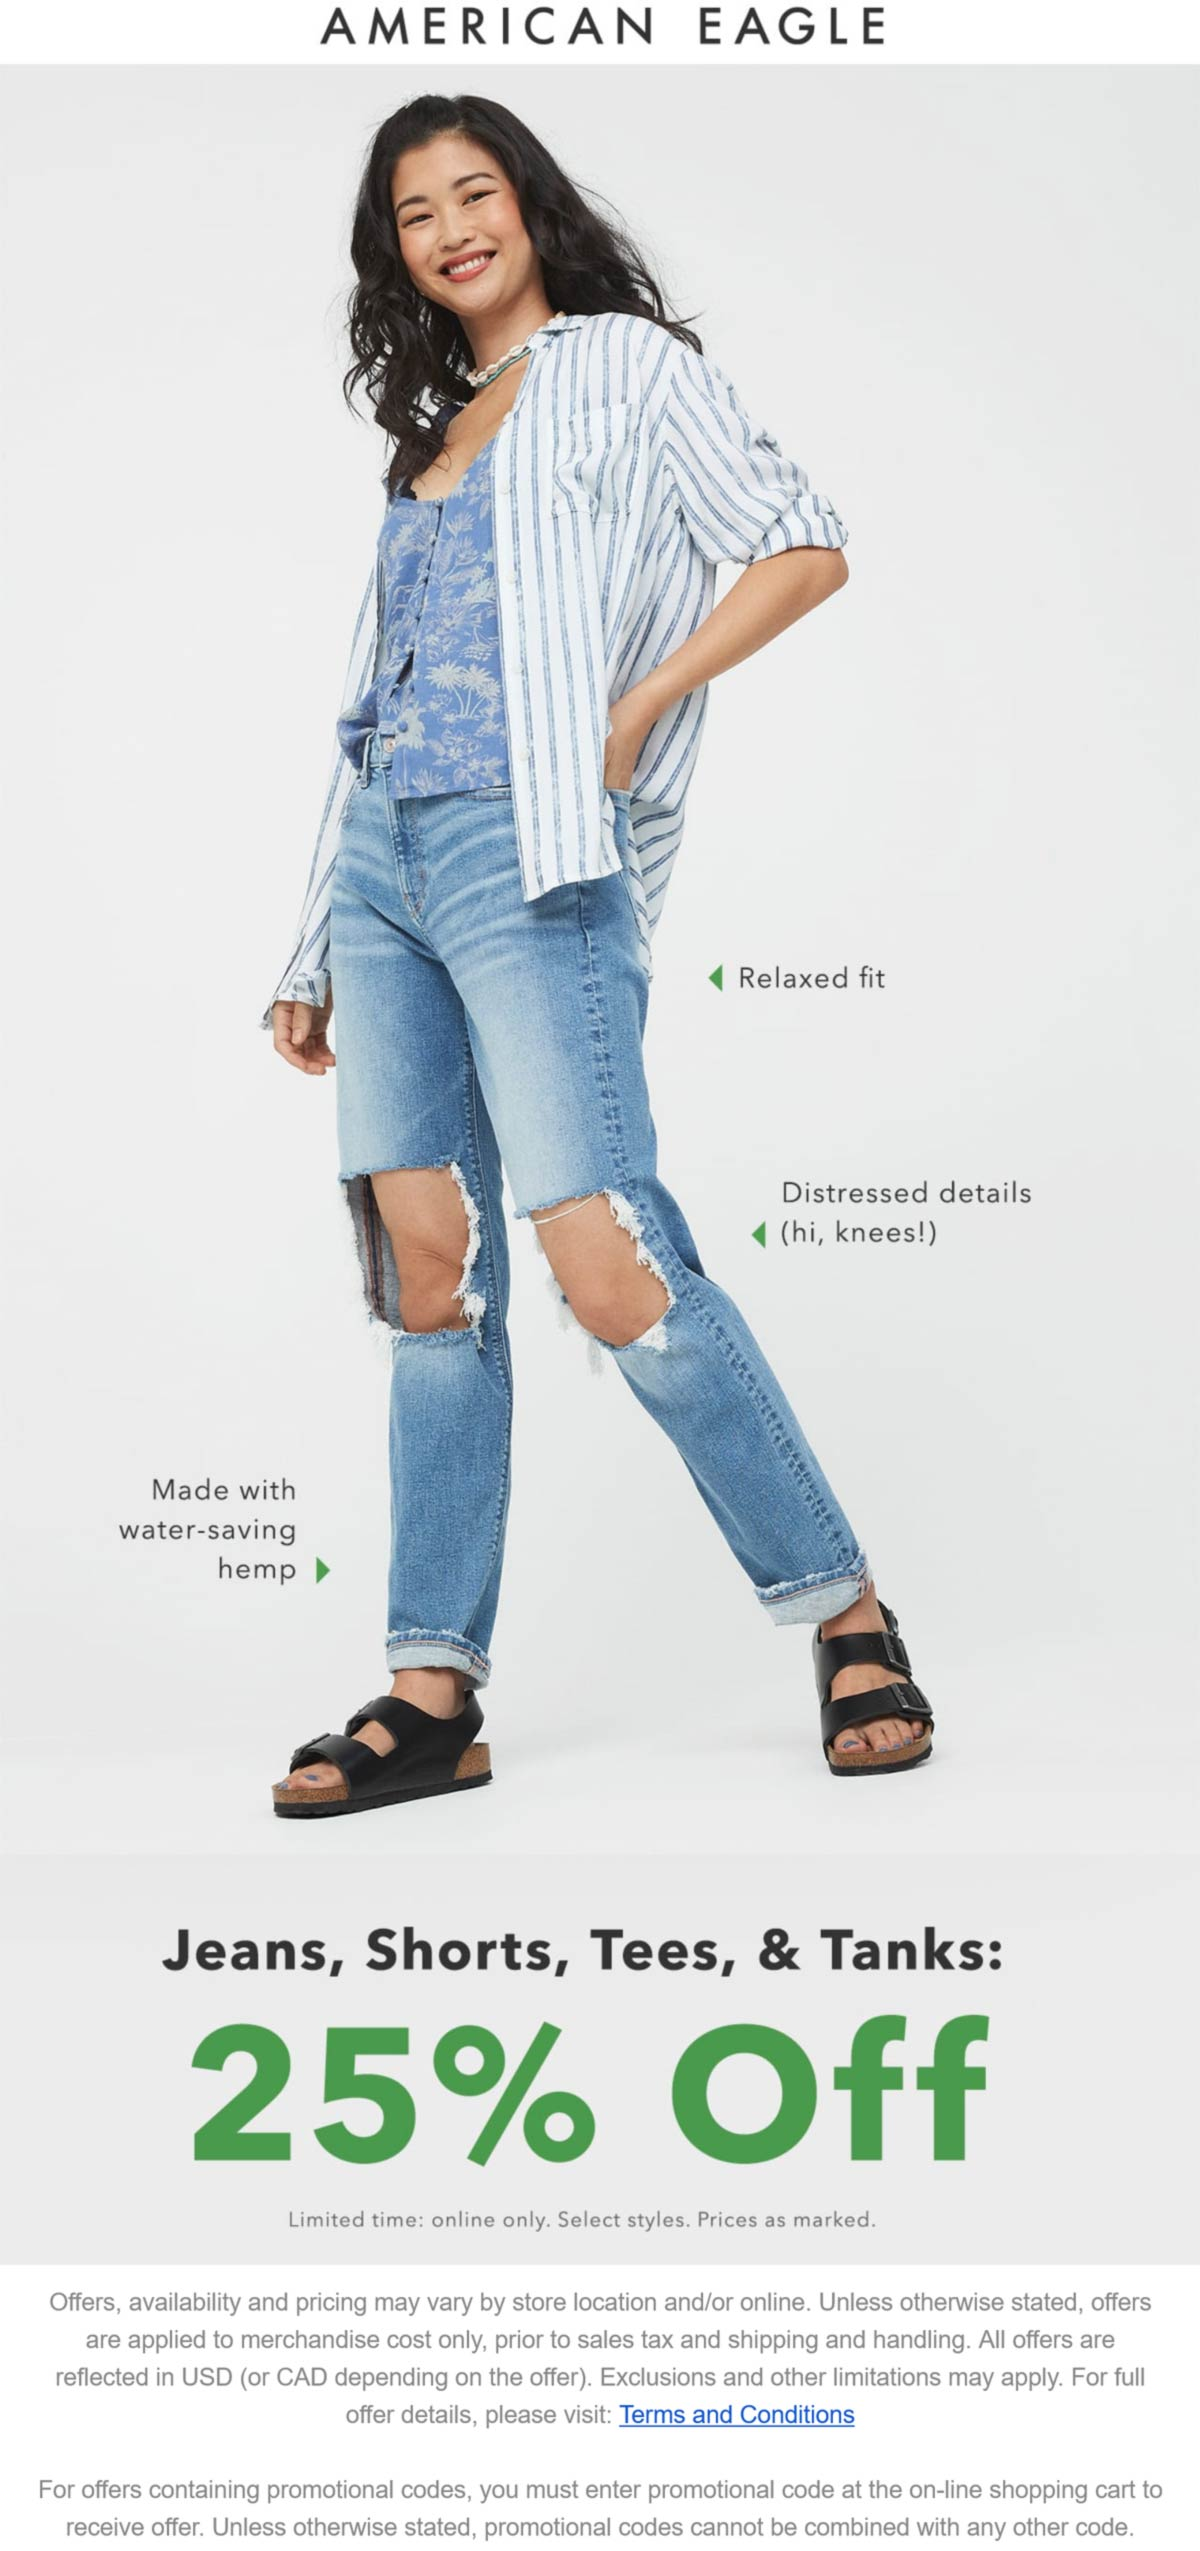 American Eagle stores Coupon  25% off jeans, shorts & tees online at American Eagle #americaneagle